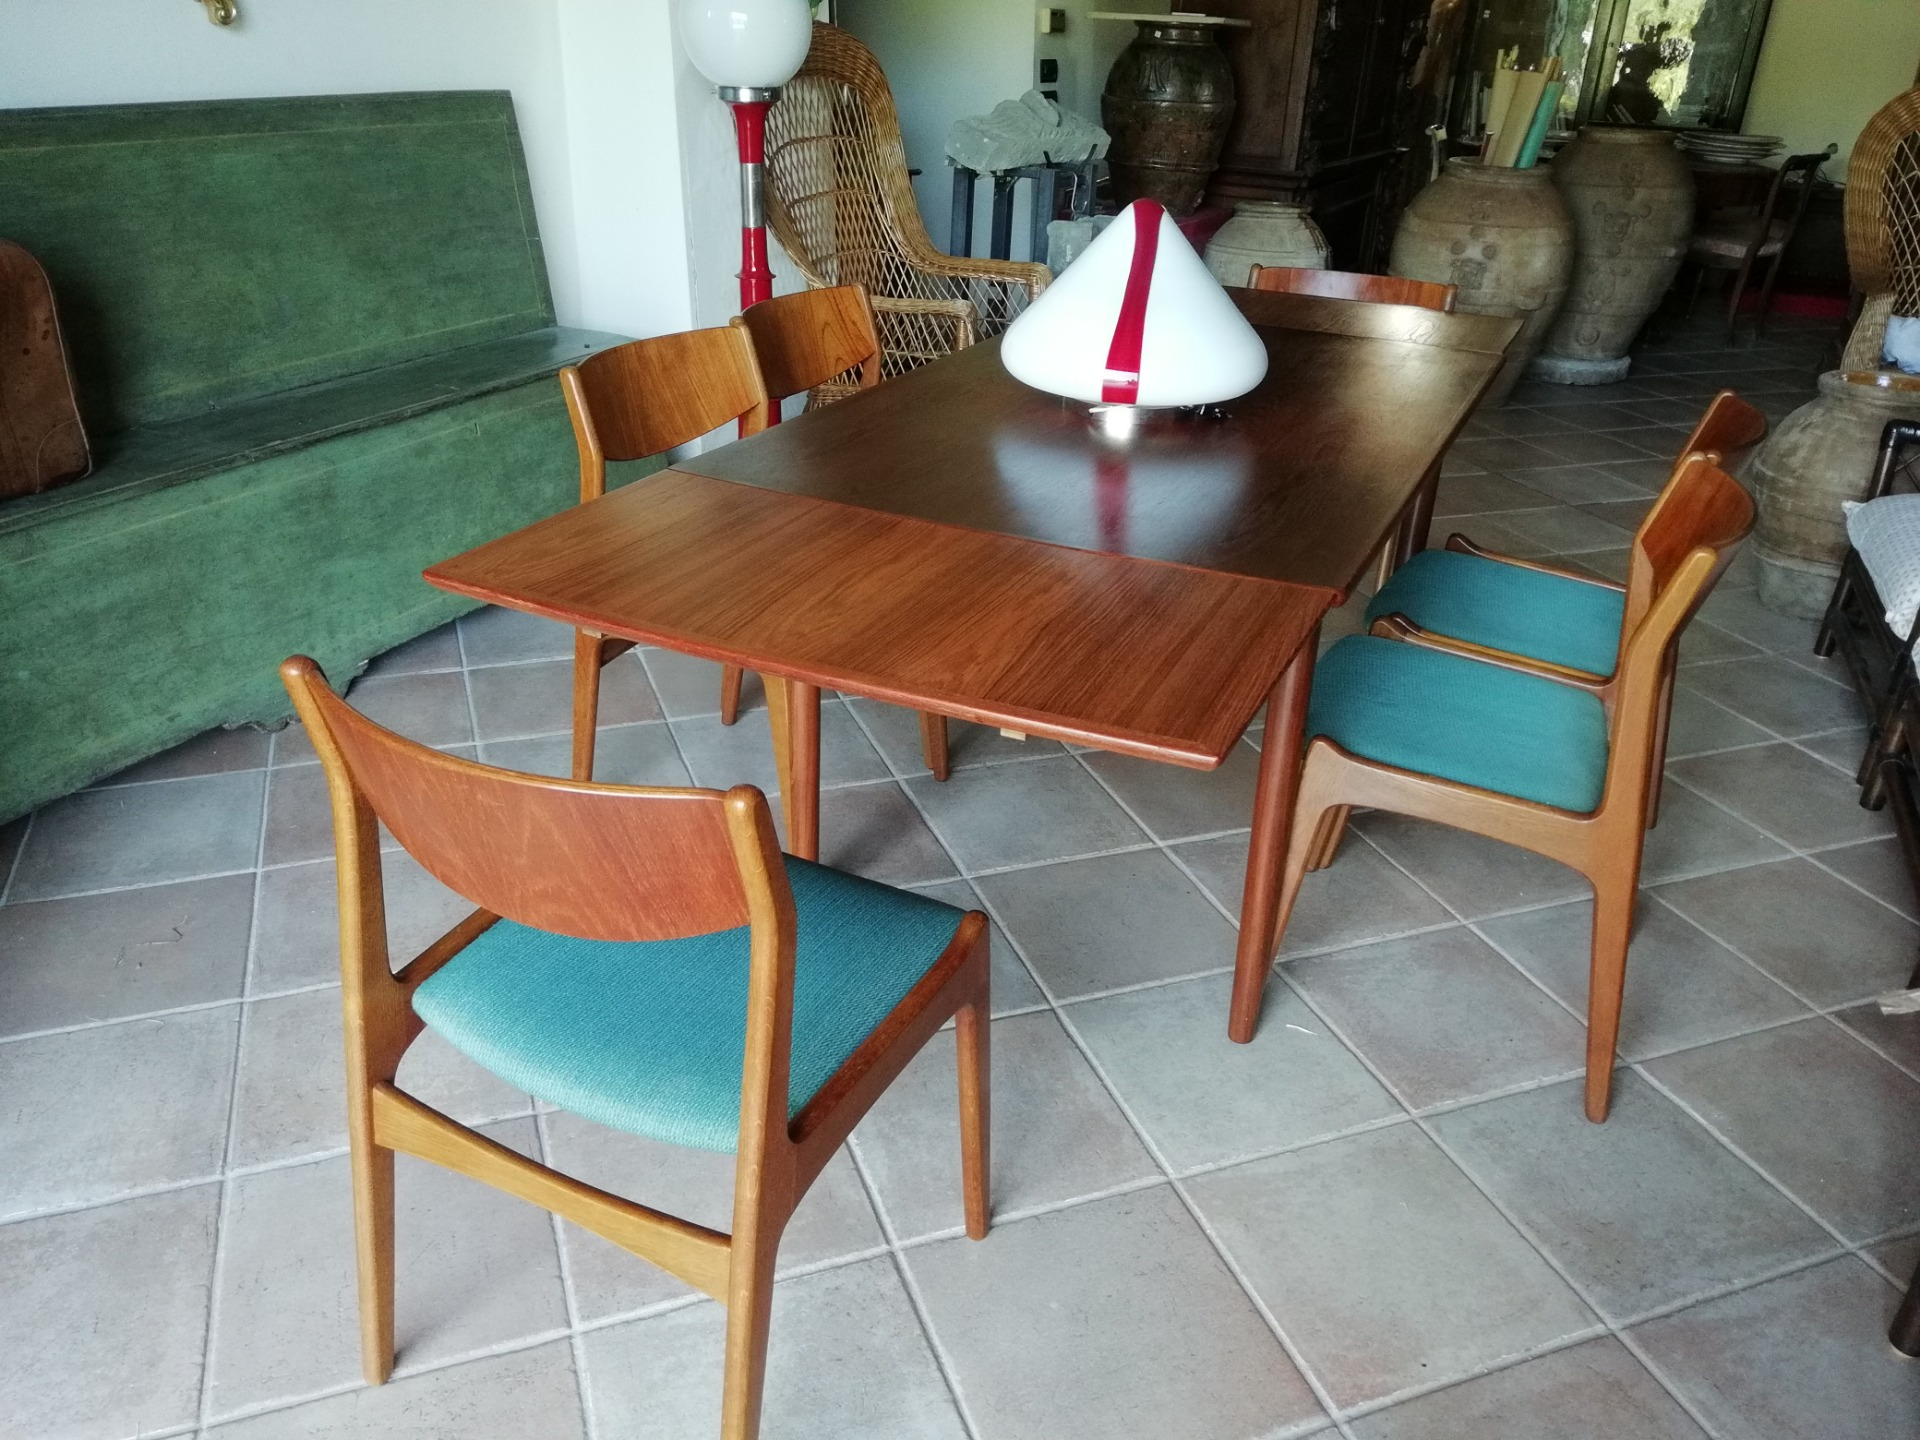 Tavolo Allungabile 6 Sedie.Very Elegant Extensible Wooden Table With 6 Chairs In Very Good